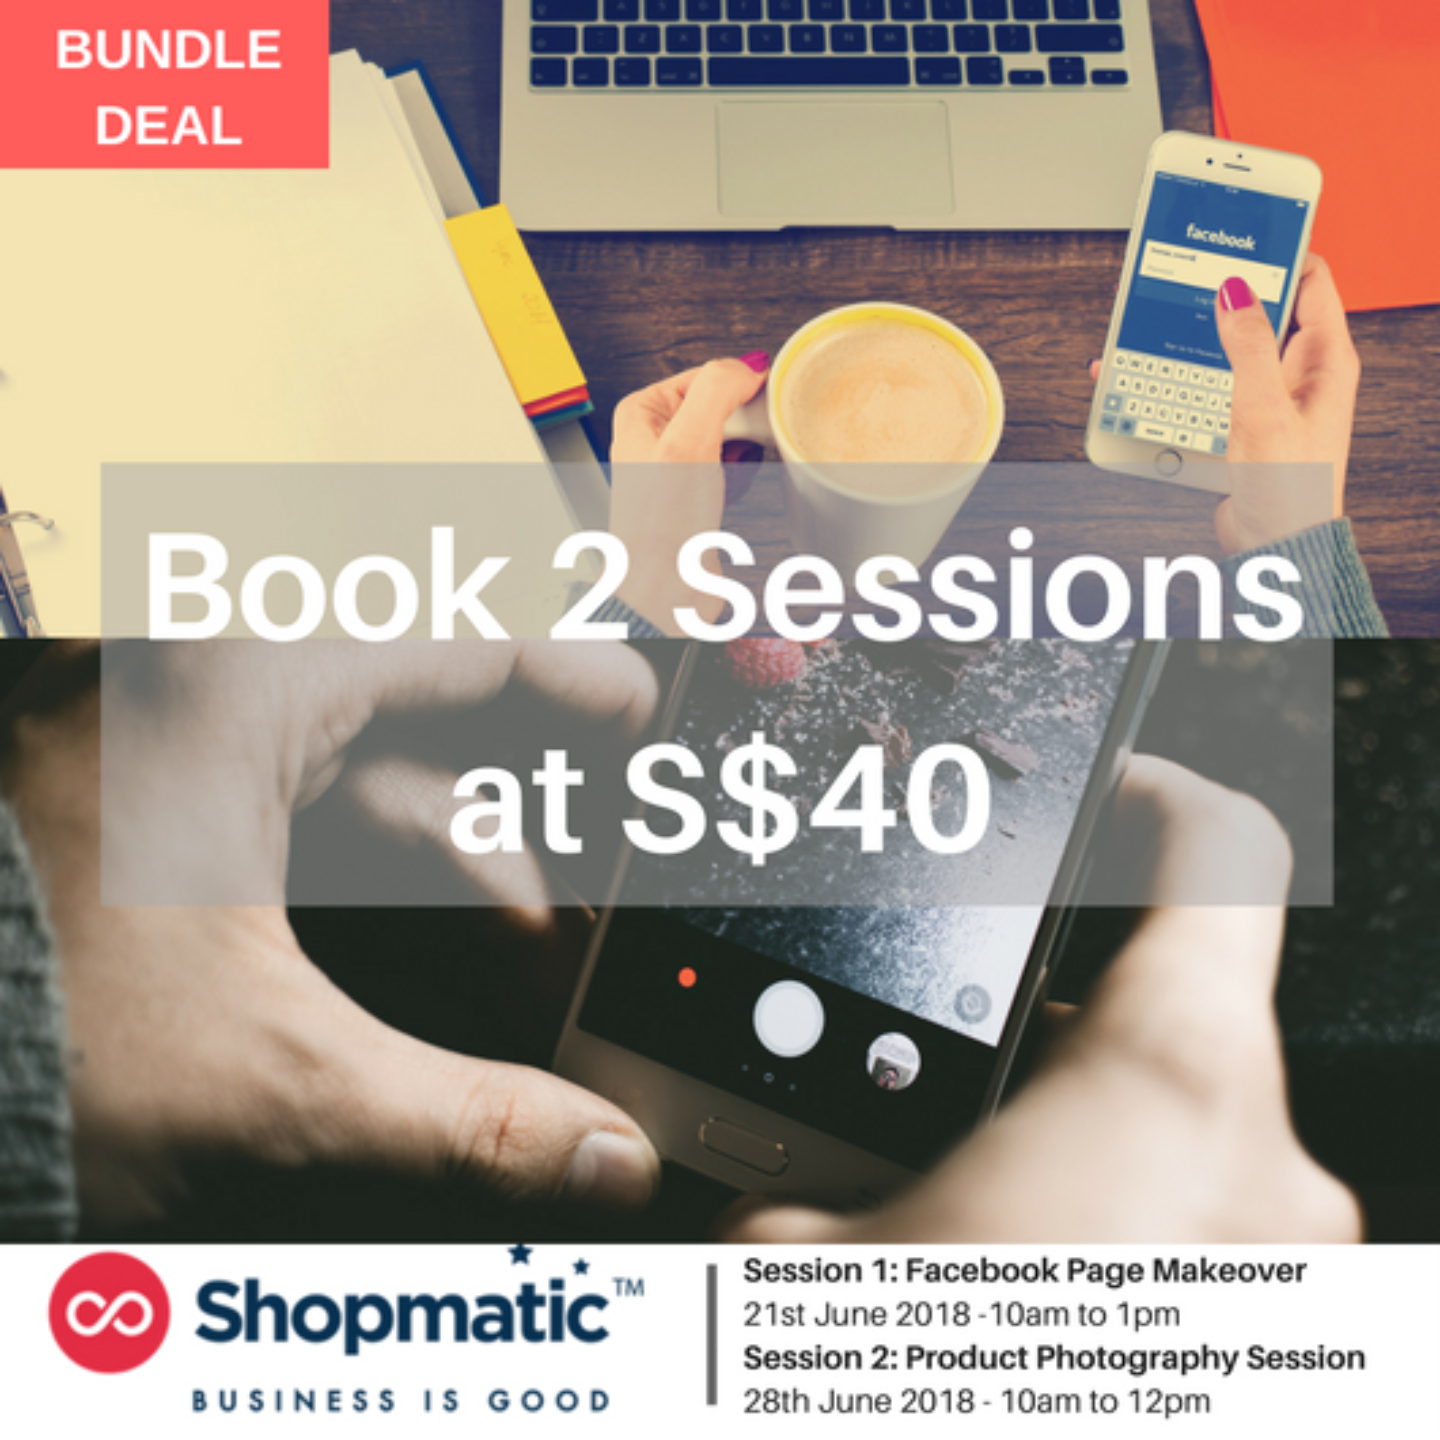 Bundle: Facebook Page Makeover + Product Photography Session